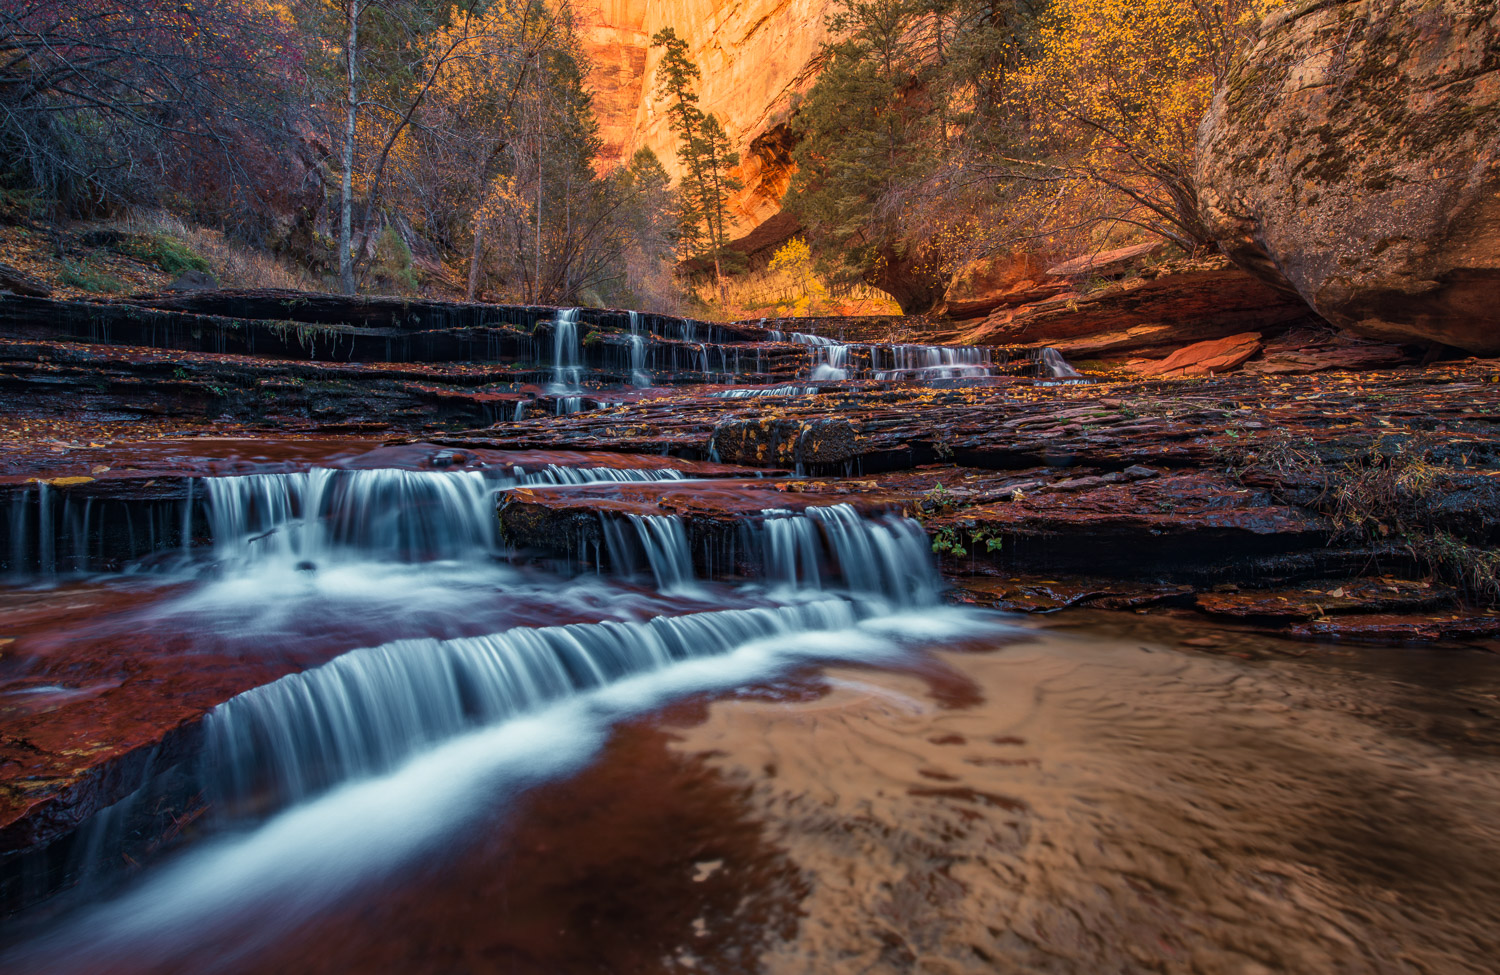 Waterfalls over red sandstone ledges before the Subway Slot Canyon.